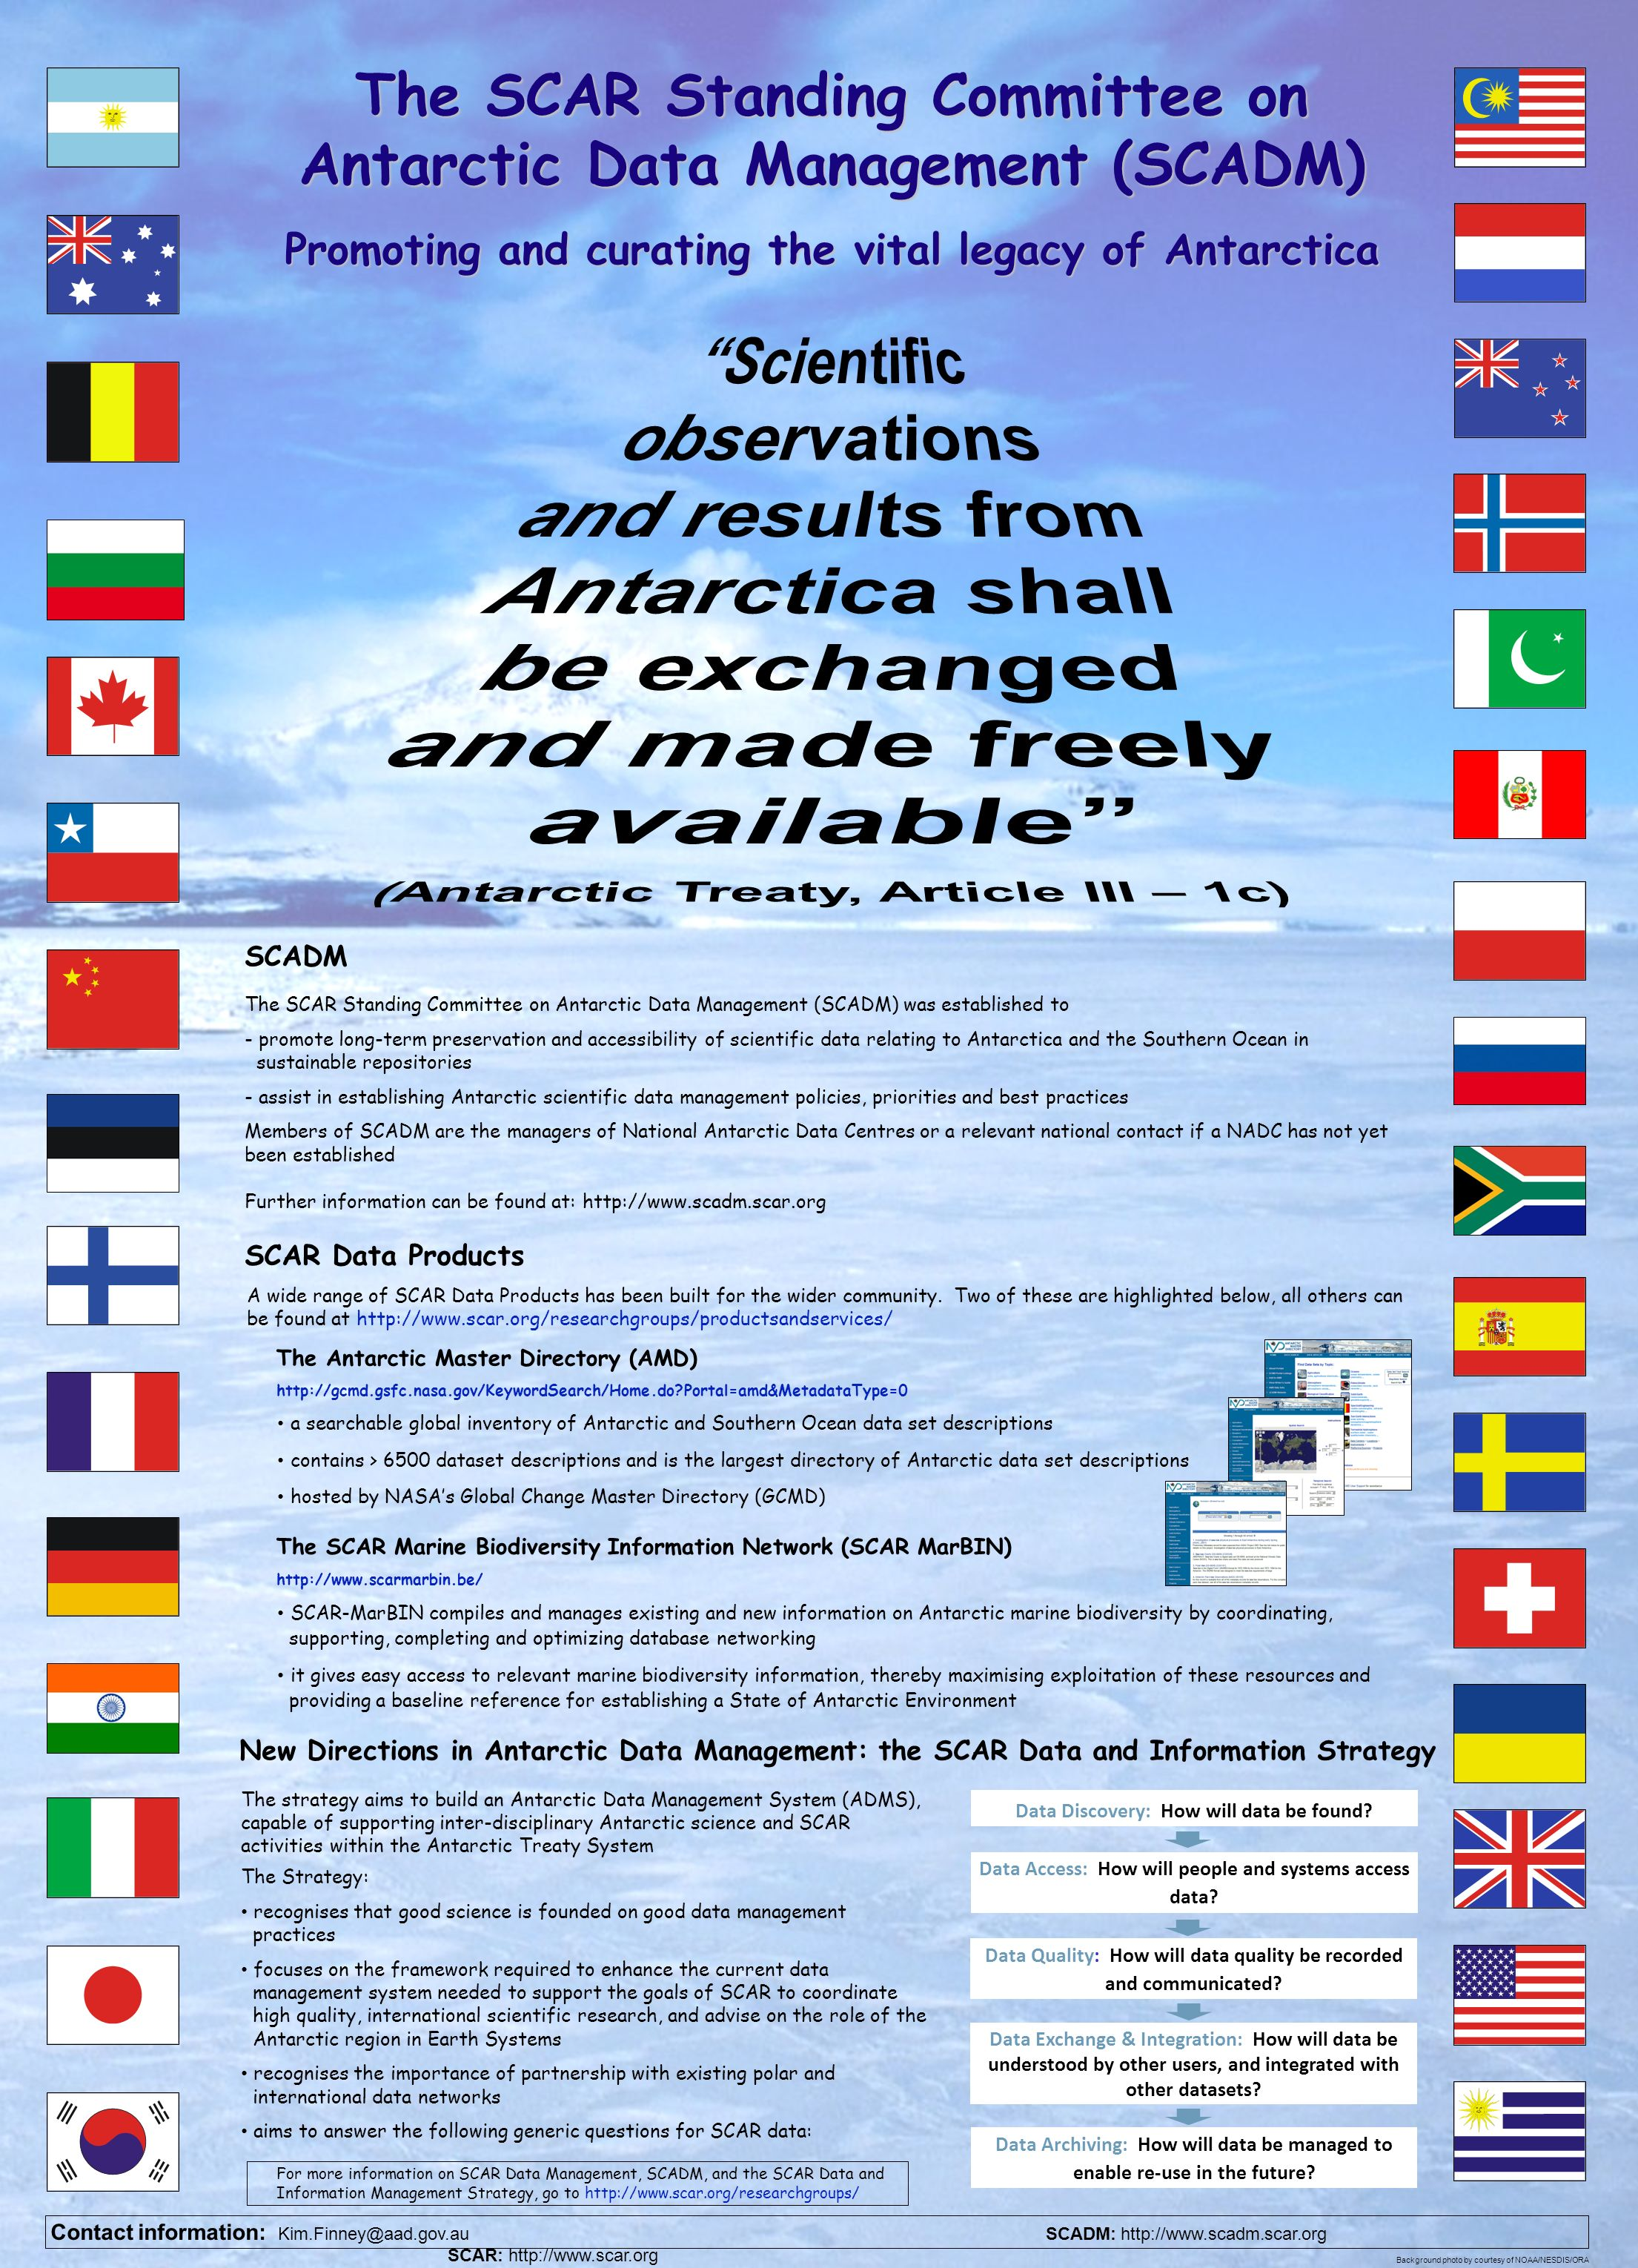 The SCAR Standing Committee on Antarctic Data Management (SCADM) Promoting and curating the vital legacy of Antarctica Contact information: Kim.Finney@aad.gov.au SCADM: http://www.scadm.scar.org SCAR: http://www.scar.org Background photo by courtesy of NOAA/NESDIS/ORA The Antarctic Master Directory (AMD) http://gcmd.gsfc.nasa.gov/KeywordSearch/Home.do?Portal=amd&MetadataType=0 For more information on SCAR Data Management, SCADM, and the SCAR Data and Information Management Strategy, go to http://www.scar.org/researchgroups/ A wide range of SCAR Data Products has been built for the wider community.